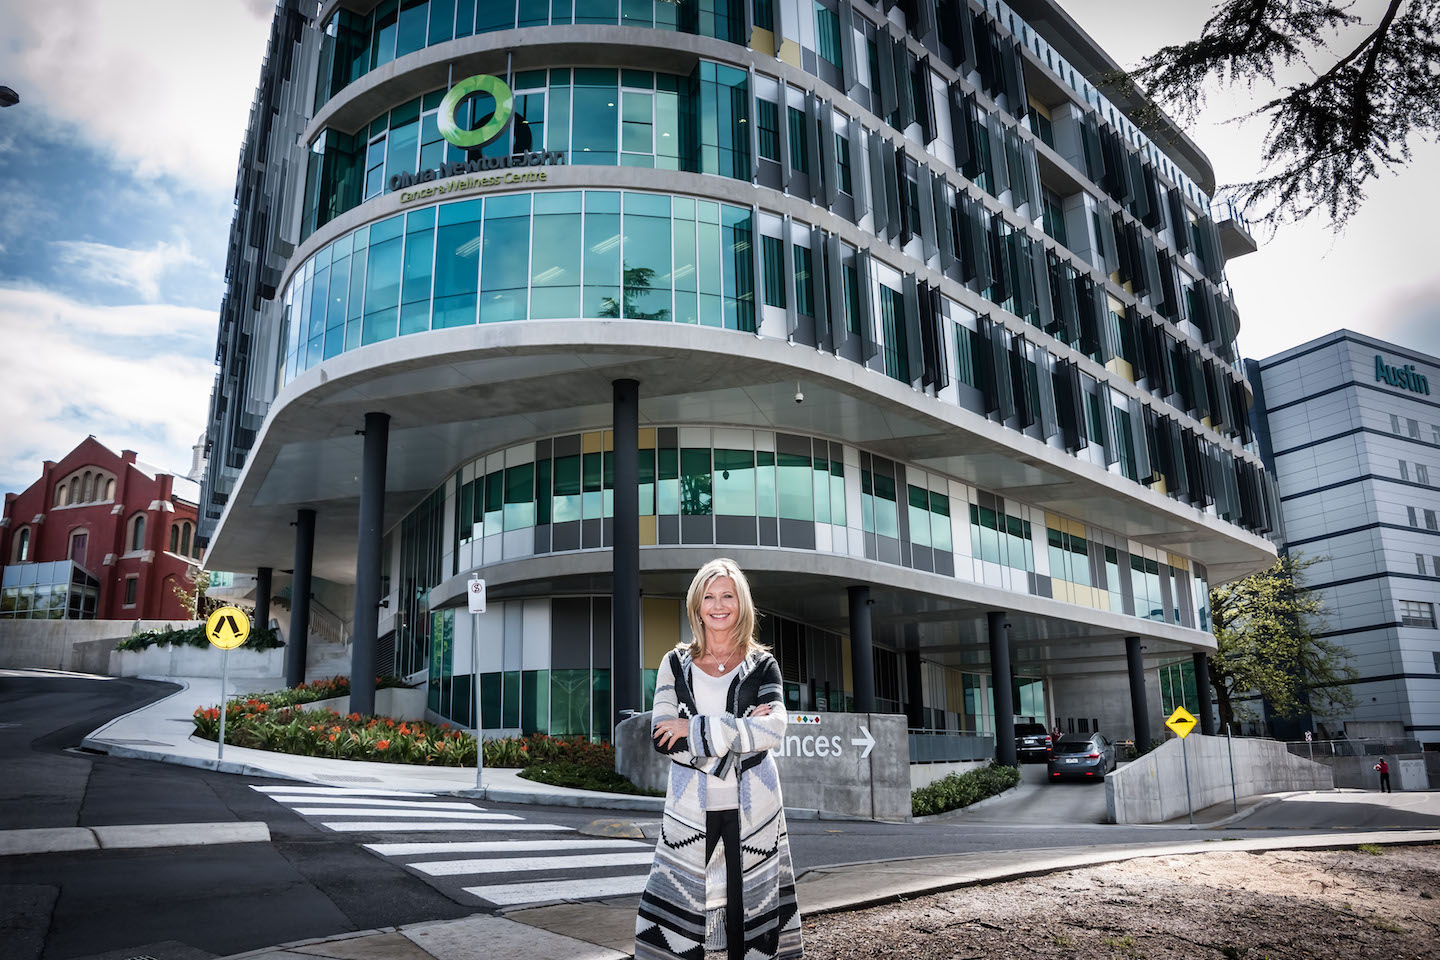 Olivia Newton-John stands outside of the Olivia Newton-John Cancer Wellness and Research Centre in the performer's hometown of Melbourne, Australia.